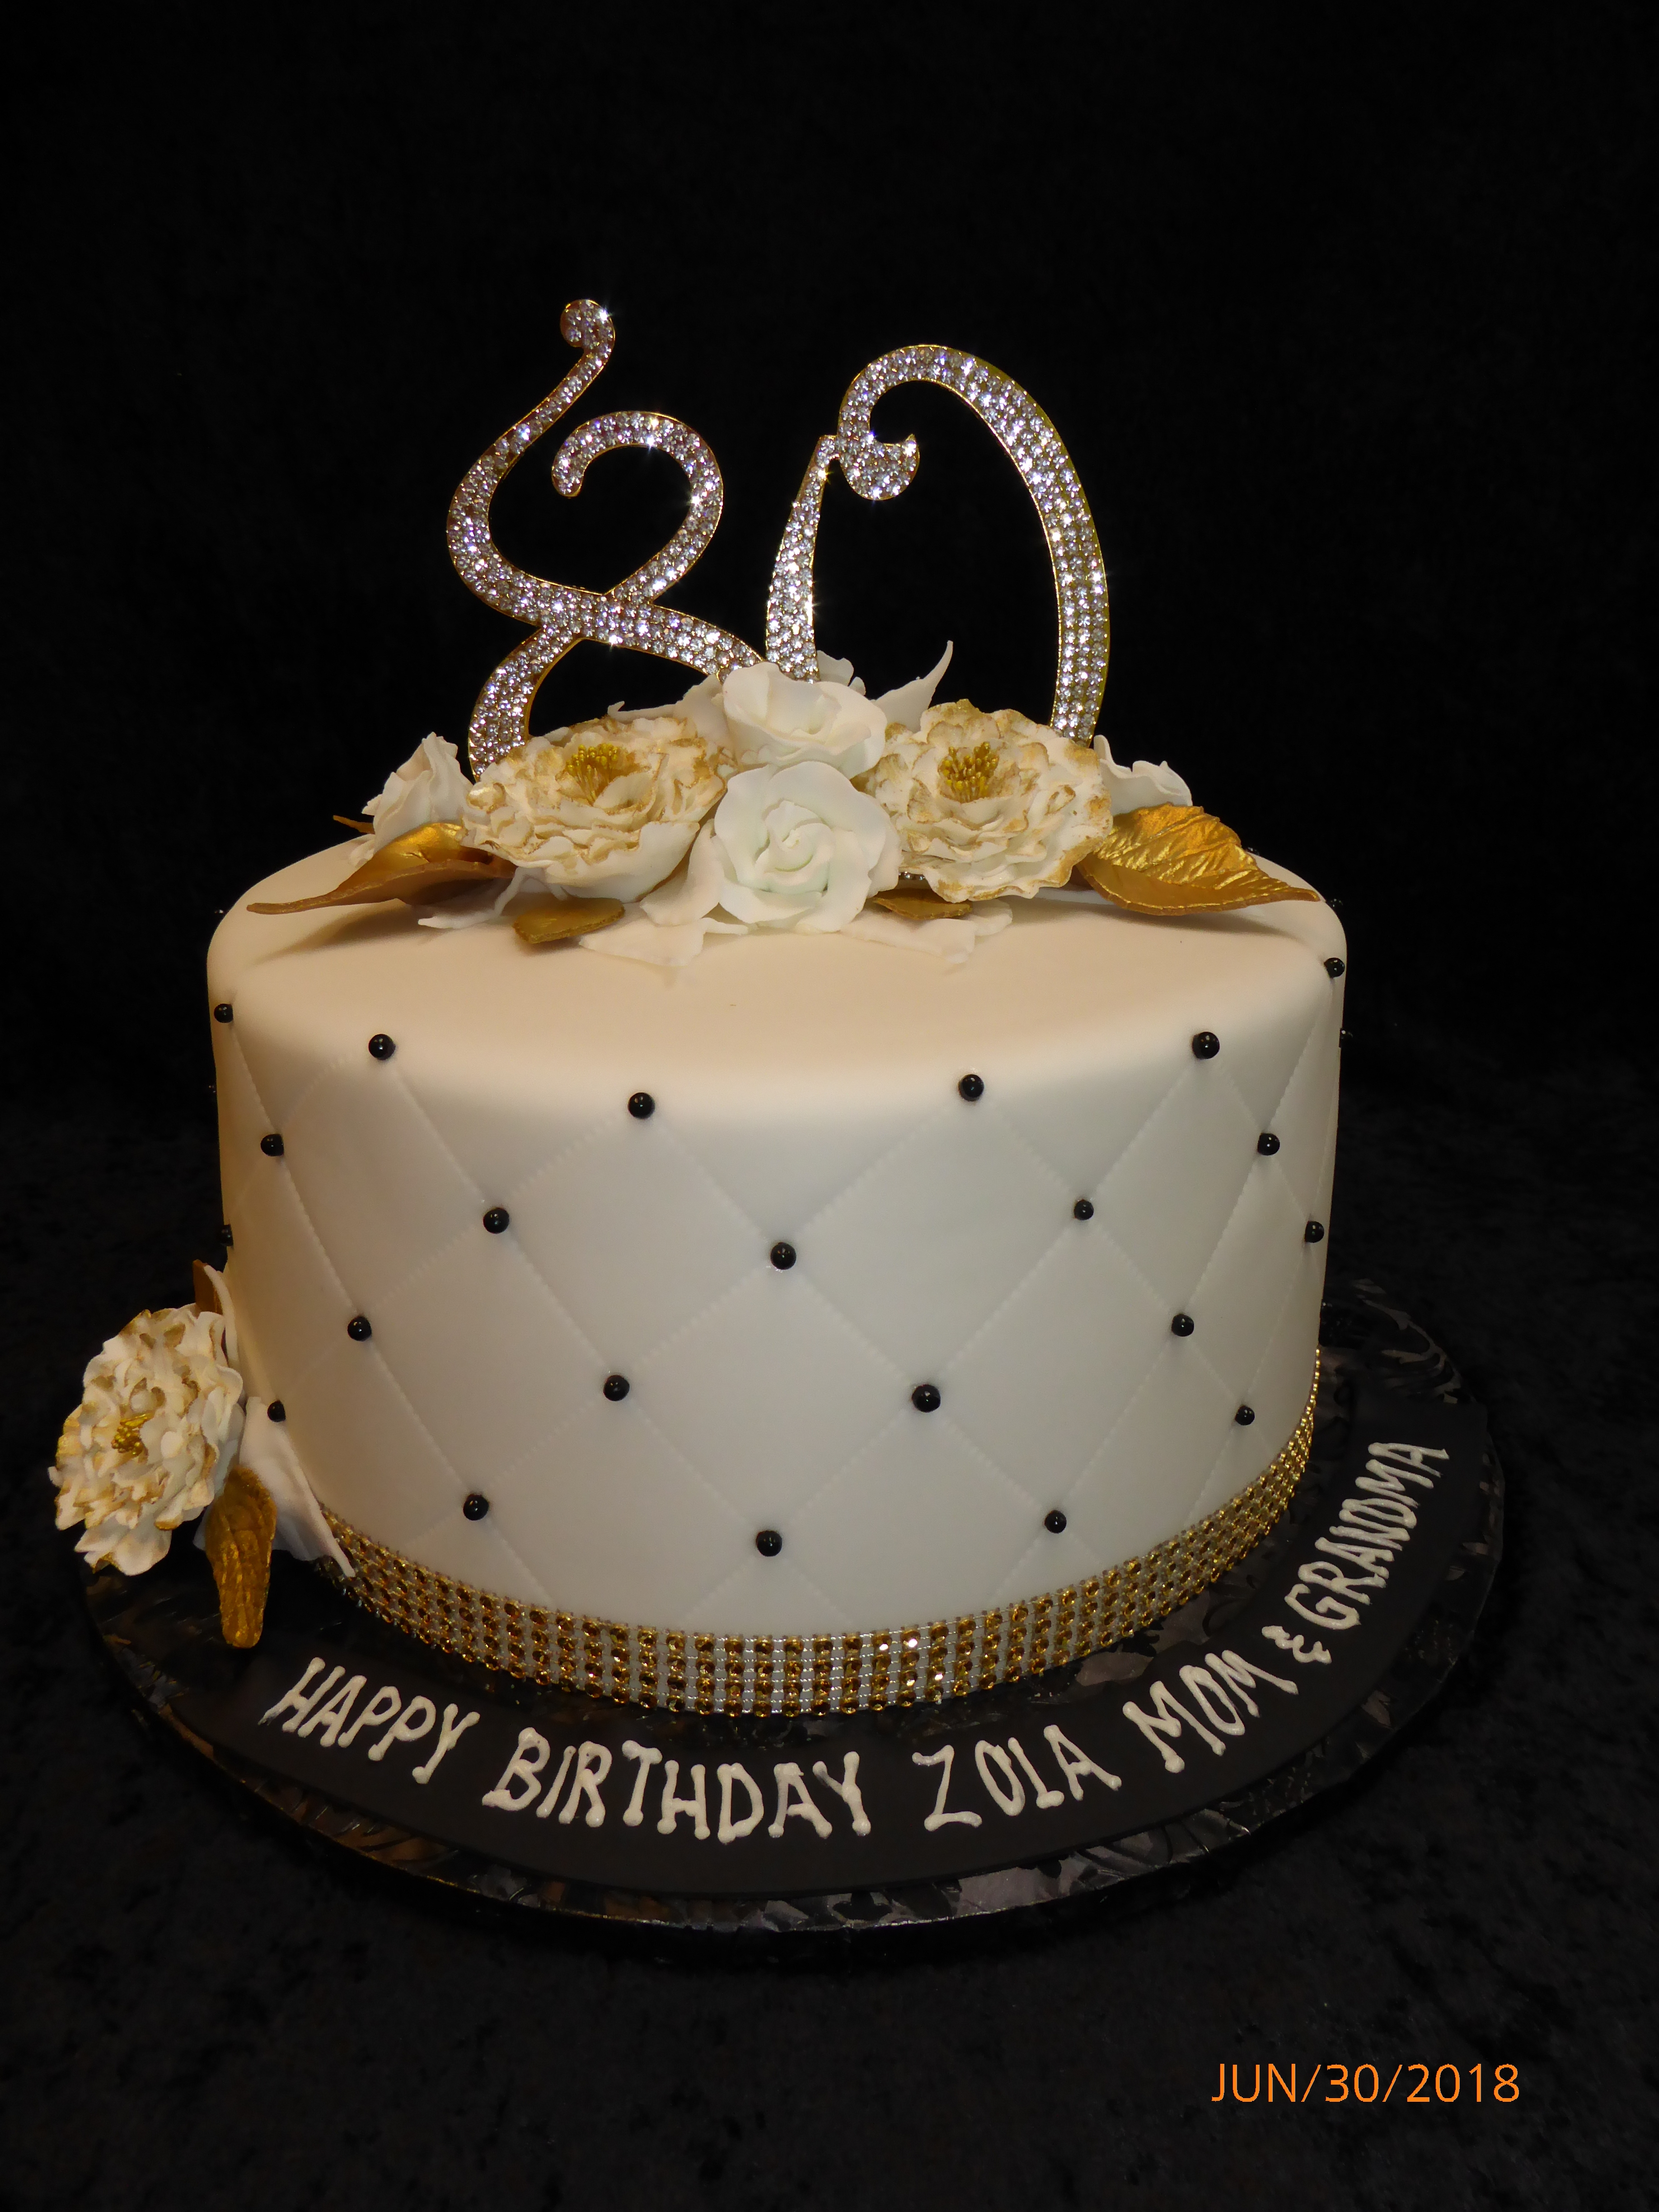 3249, 80th birthday, eightieth birthday, flower, flowers, silver, gold, white, black